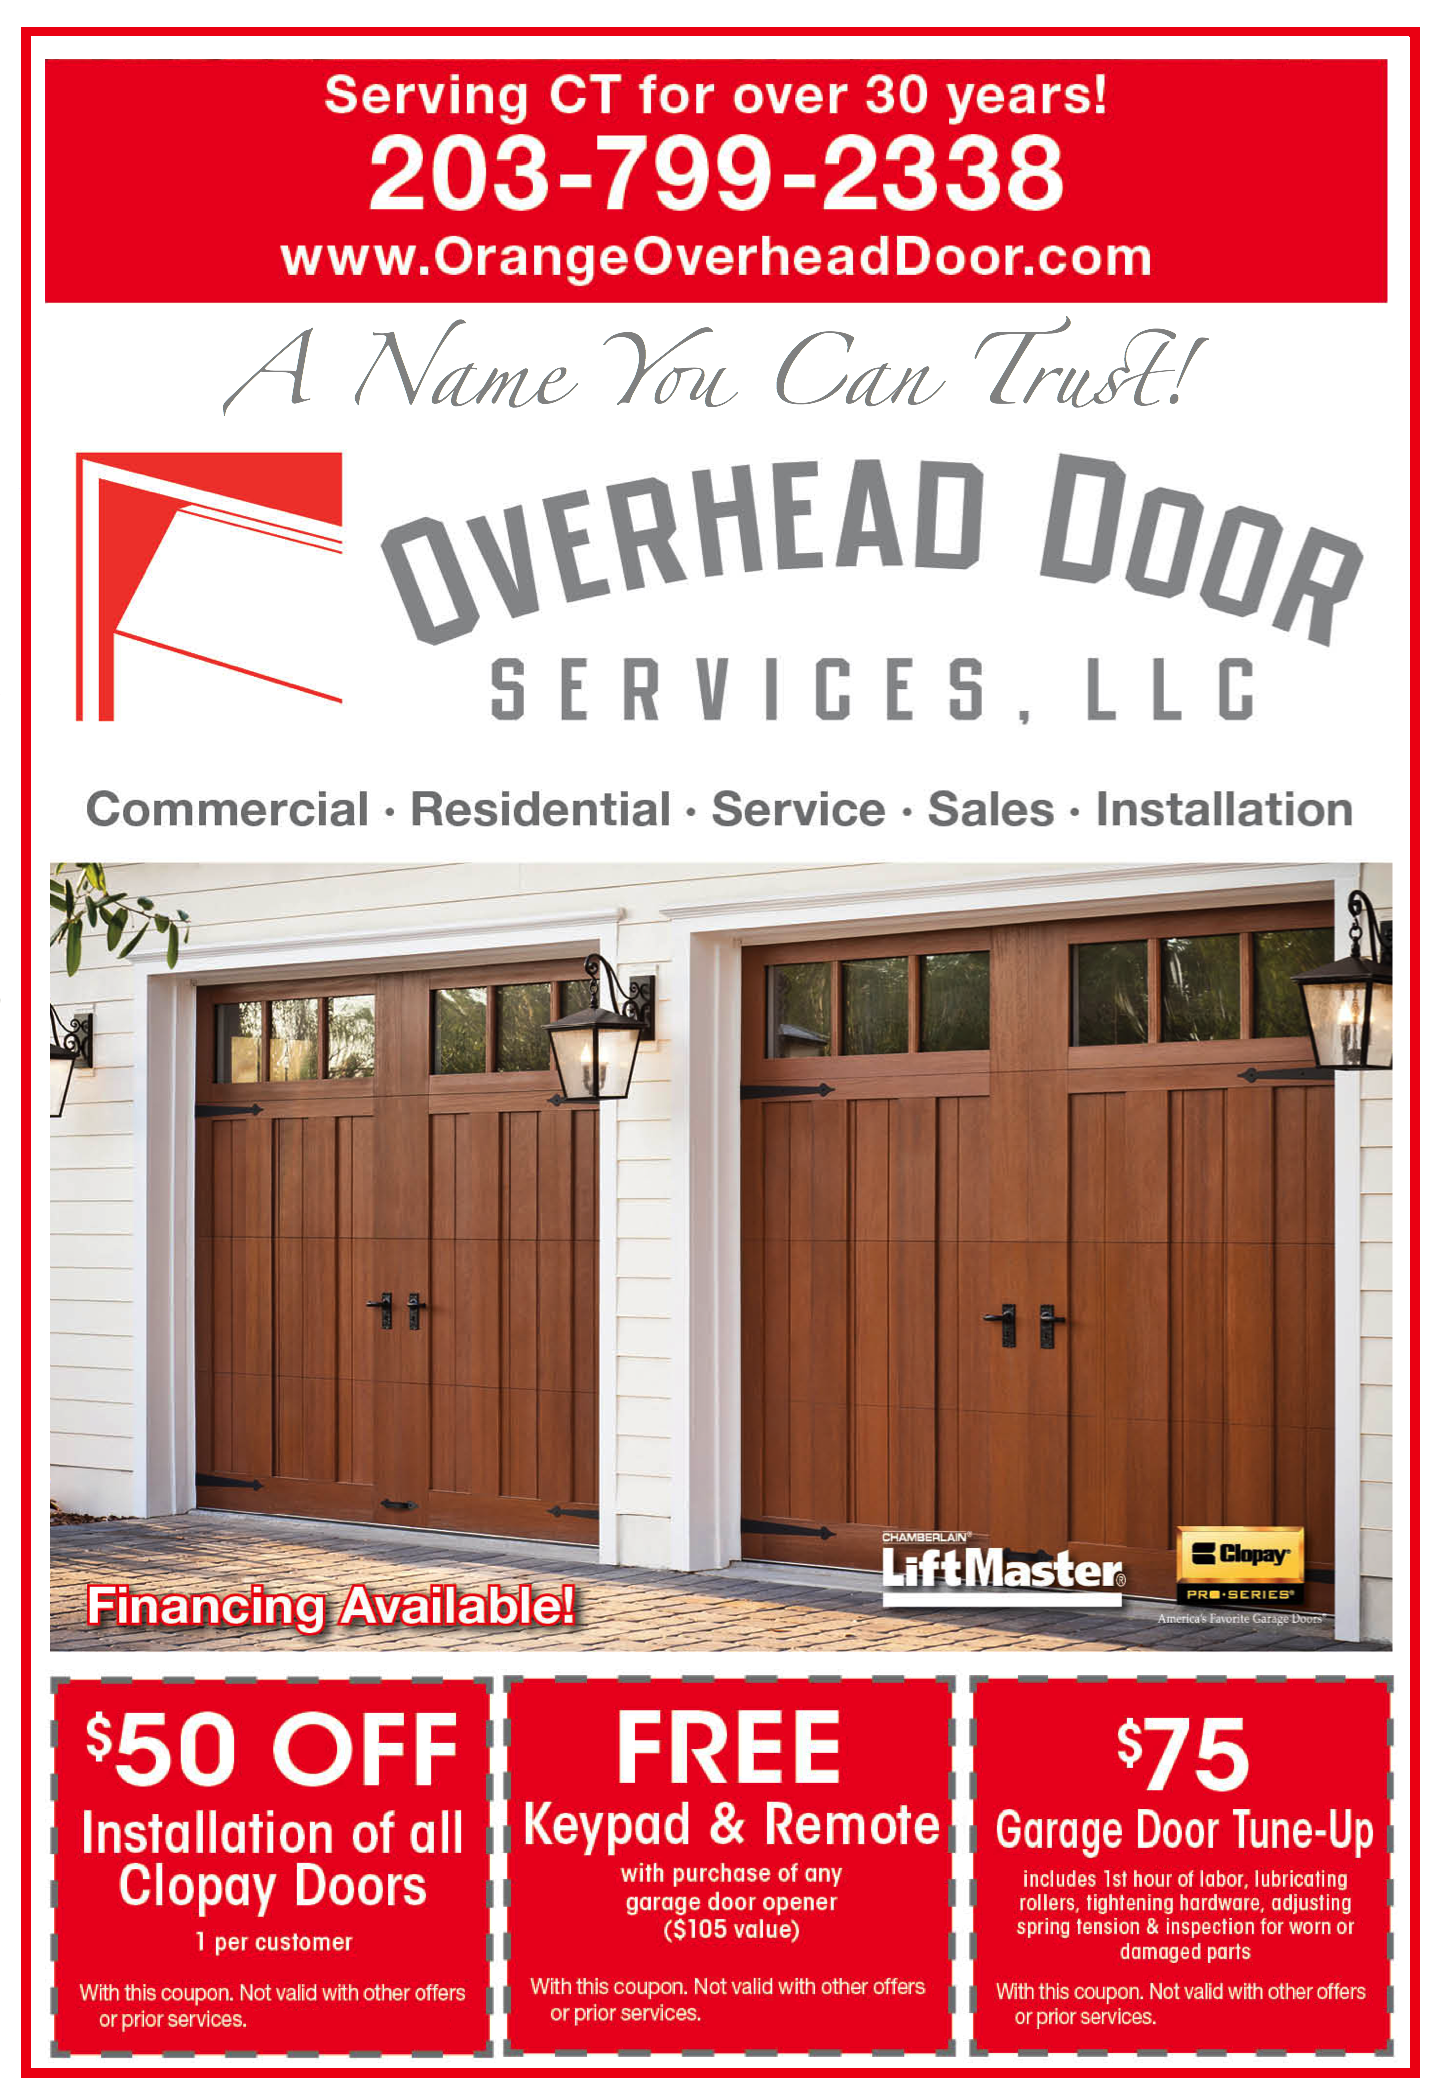 Specials And Promotions Orange Ct Overhead Door Services